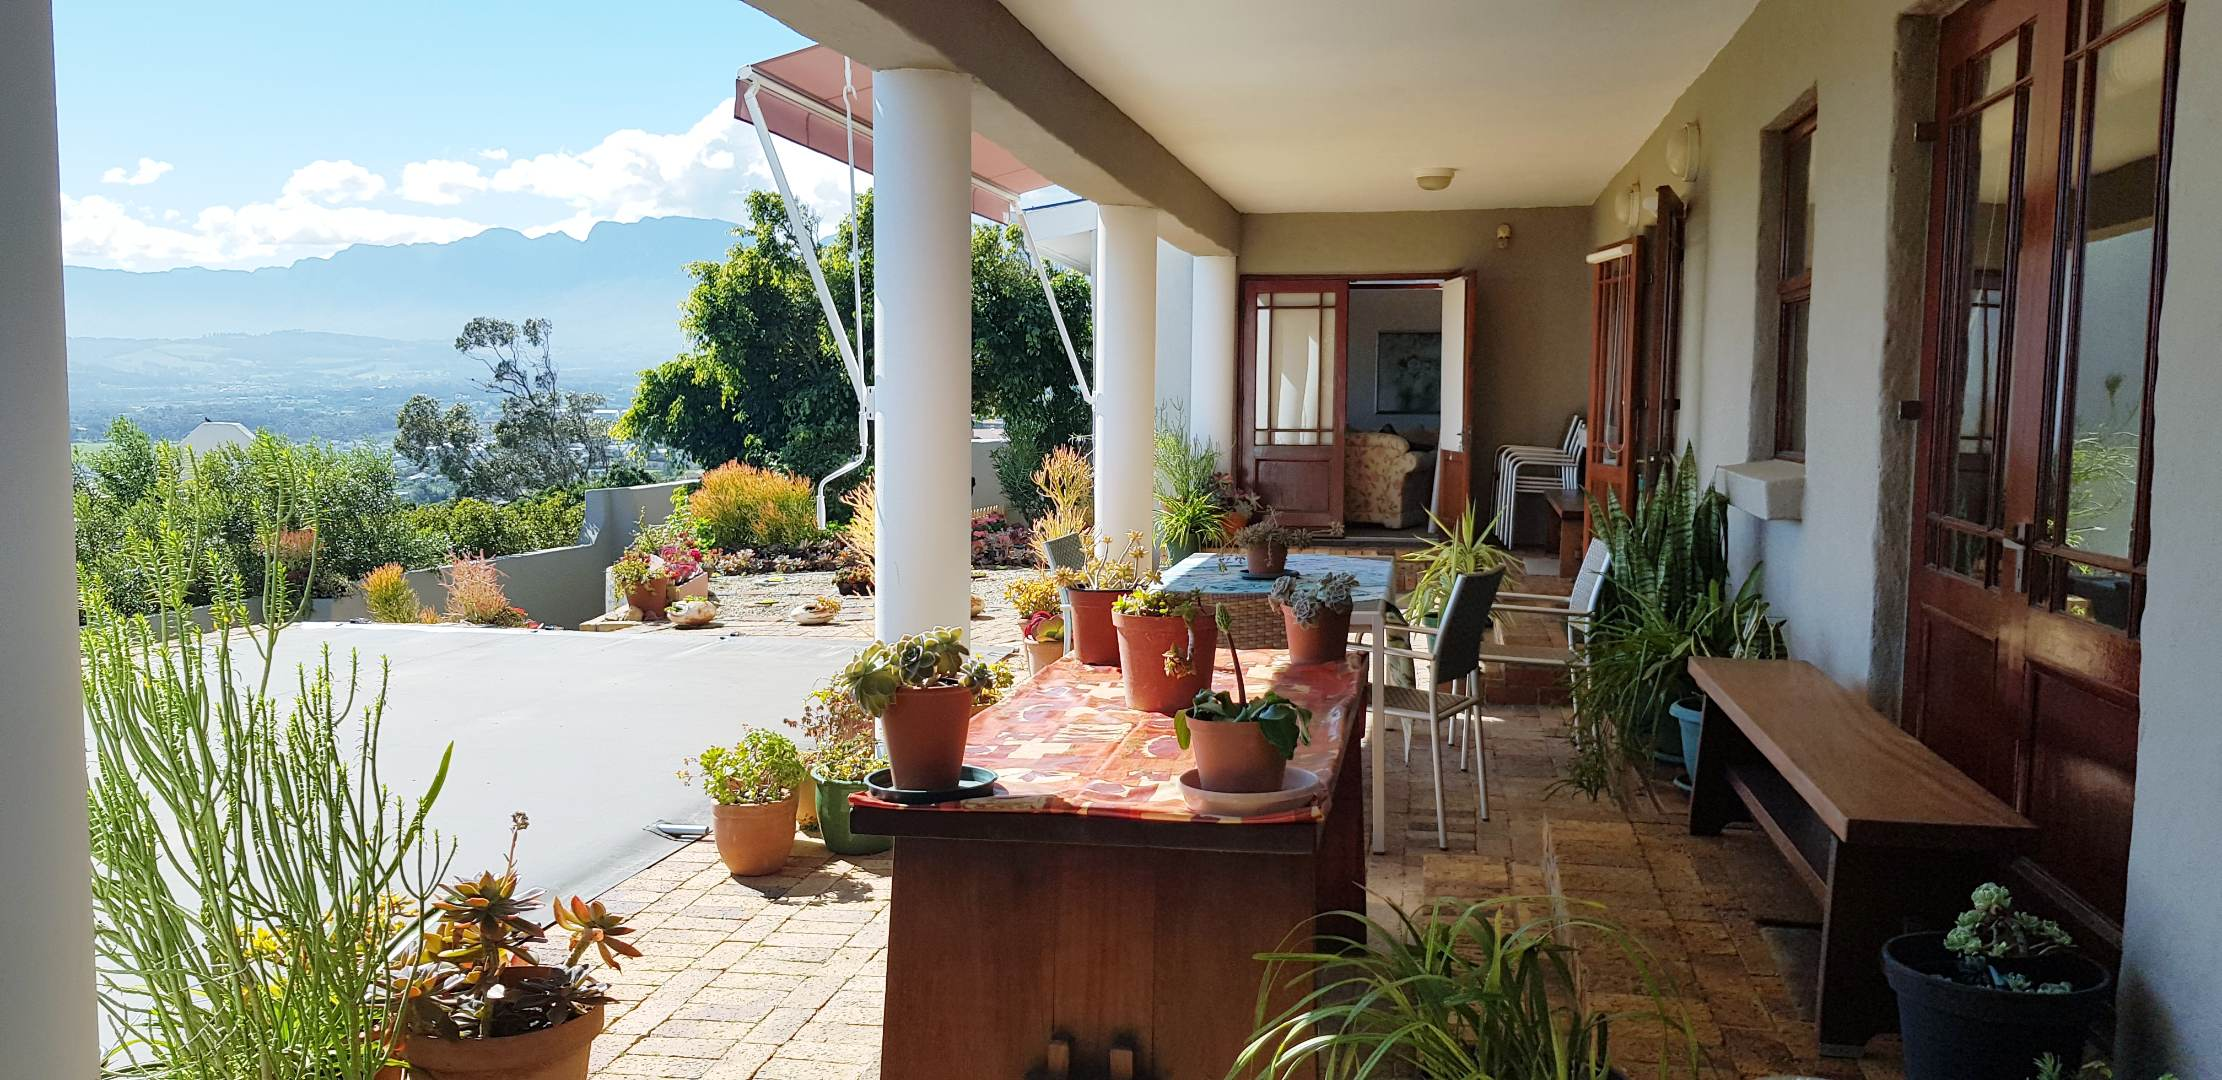 6 Bedroom House For Sale in Mountainside